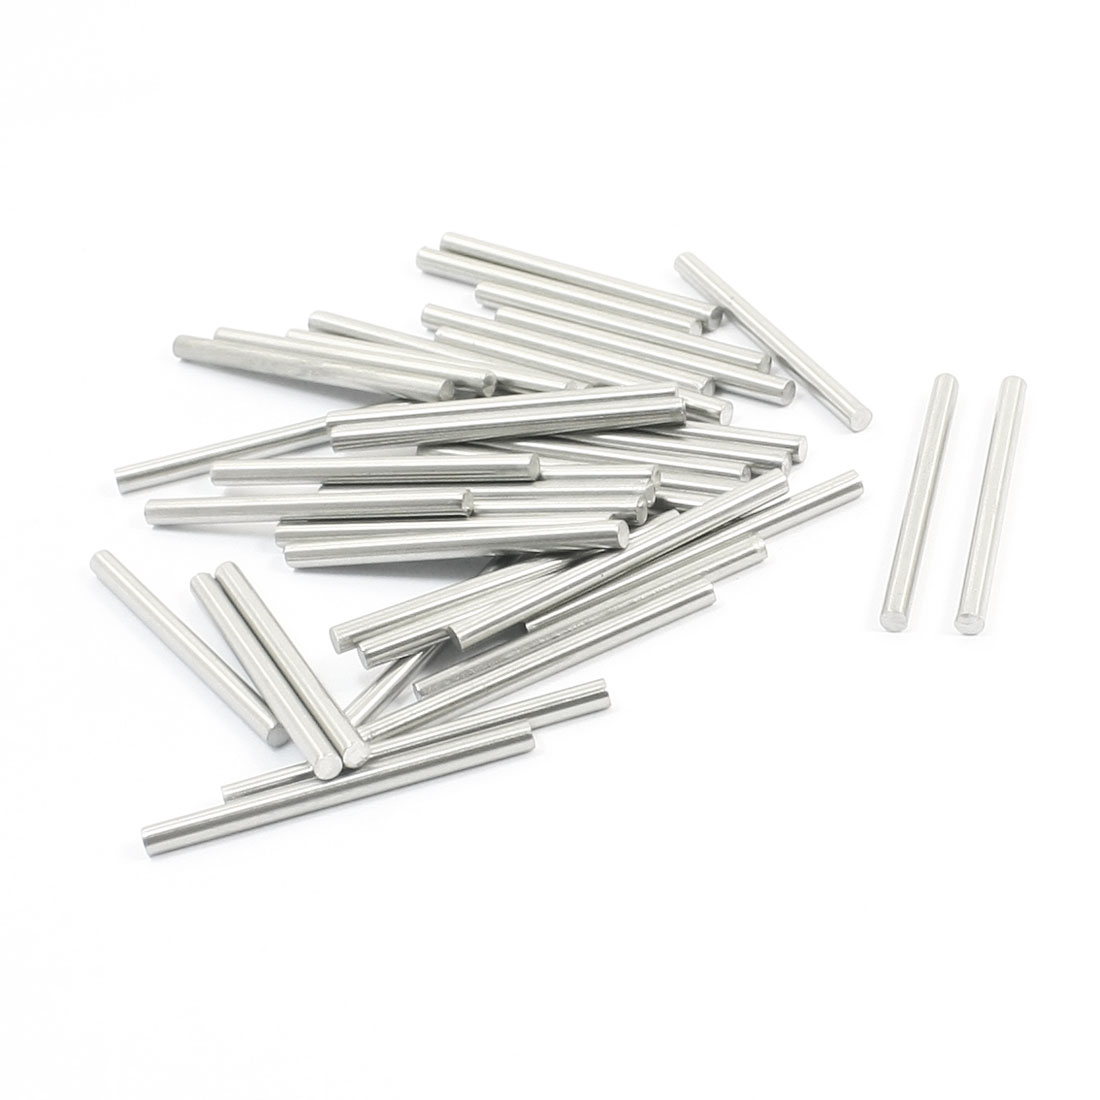 40Pcs Stainless Steel Car Models Electric Model Round Rods 40mmx3mm